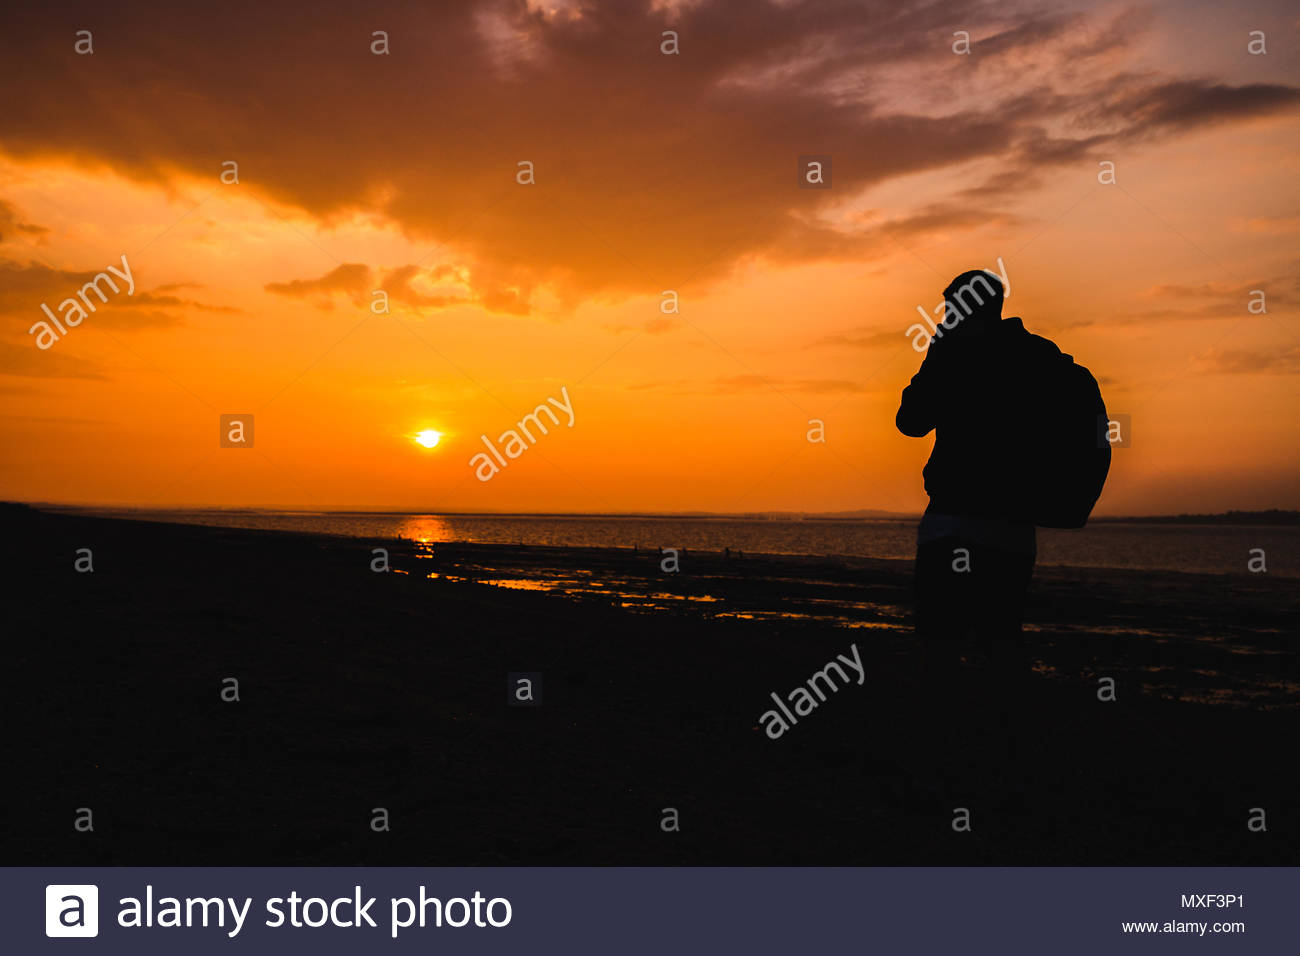 Taking a photo of the sunset - Stock Image